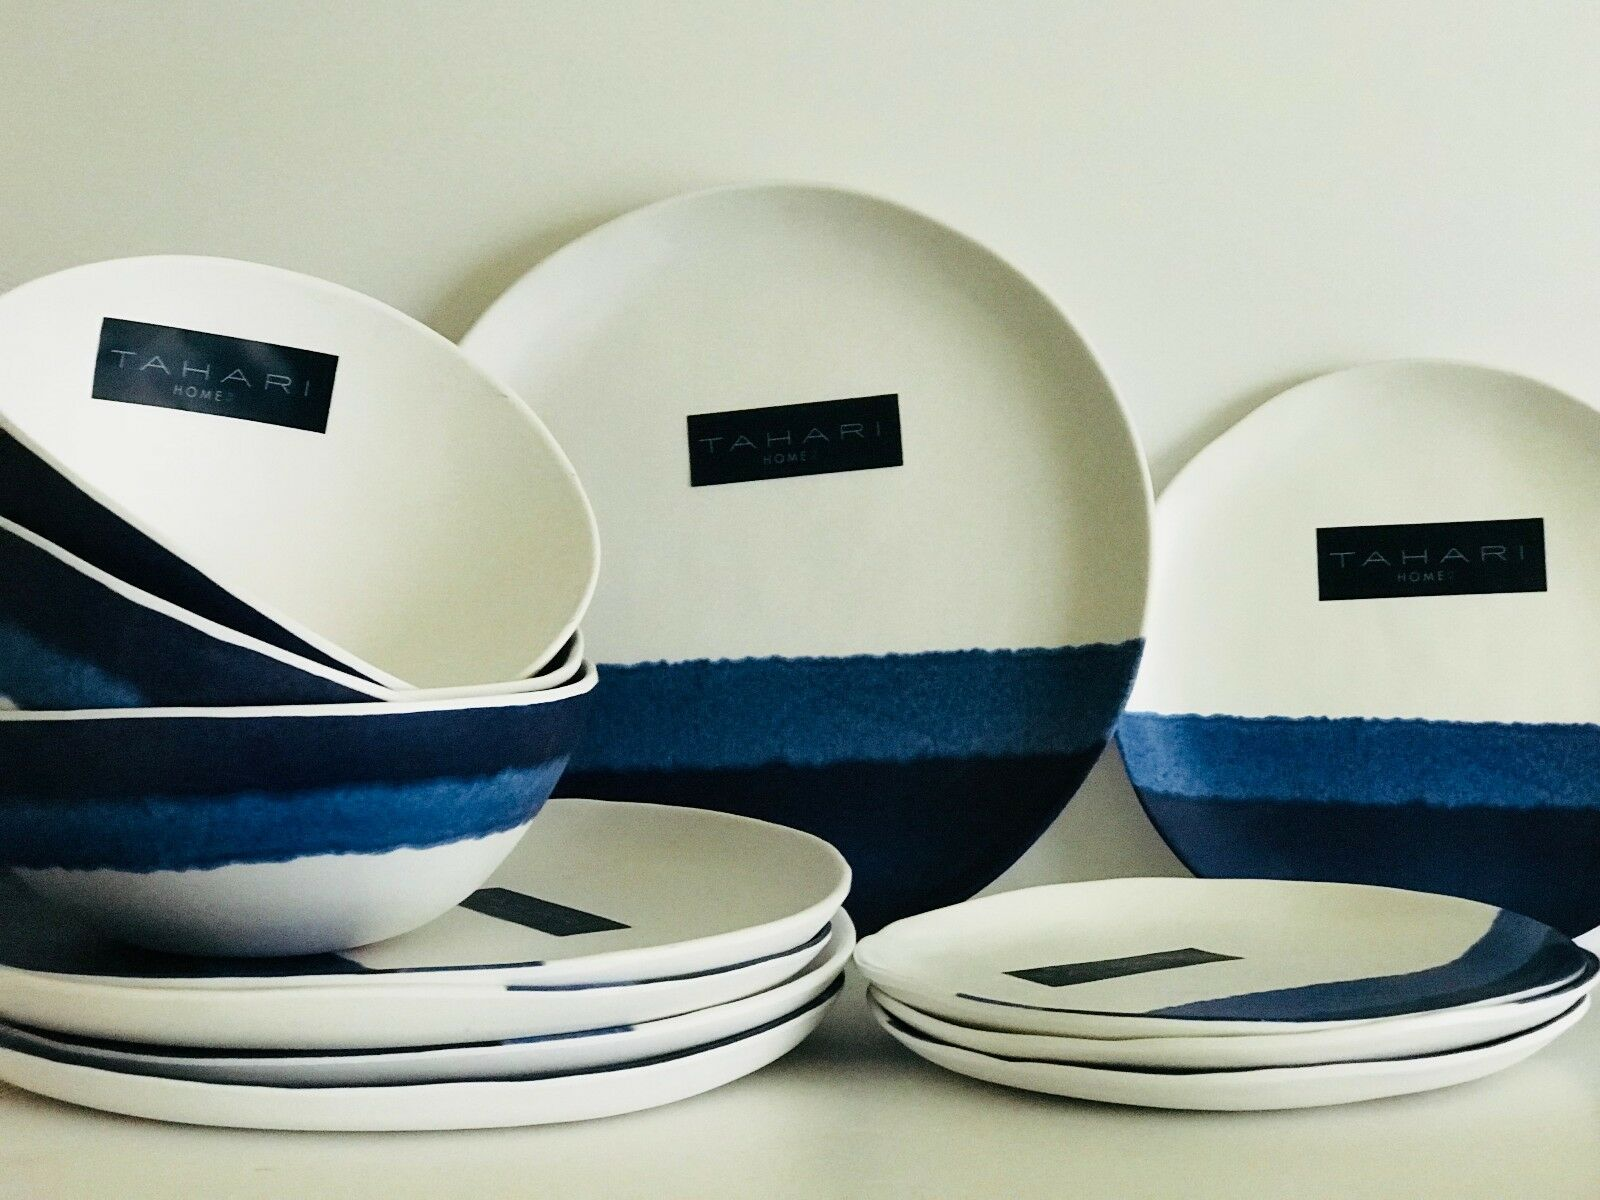 Tahari Home Melamine Plates bluee Indigo Glaze Dinner Salad & Bowls Sets of 4 NWT